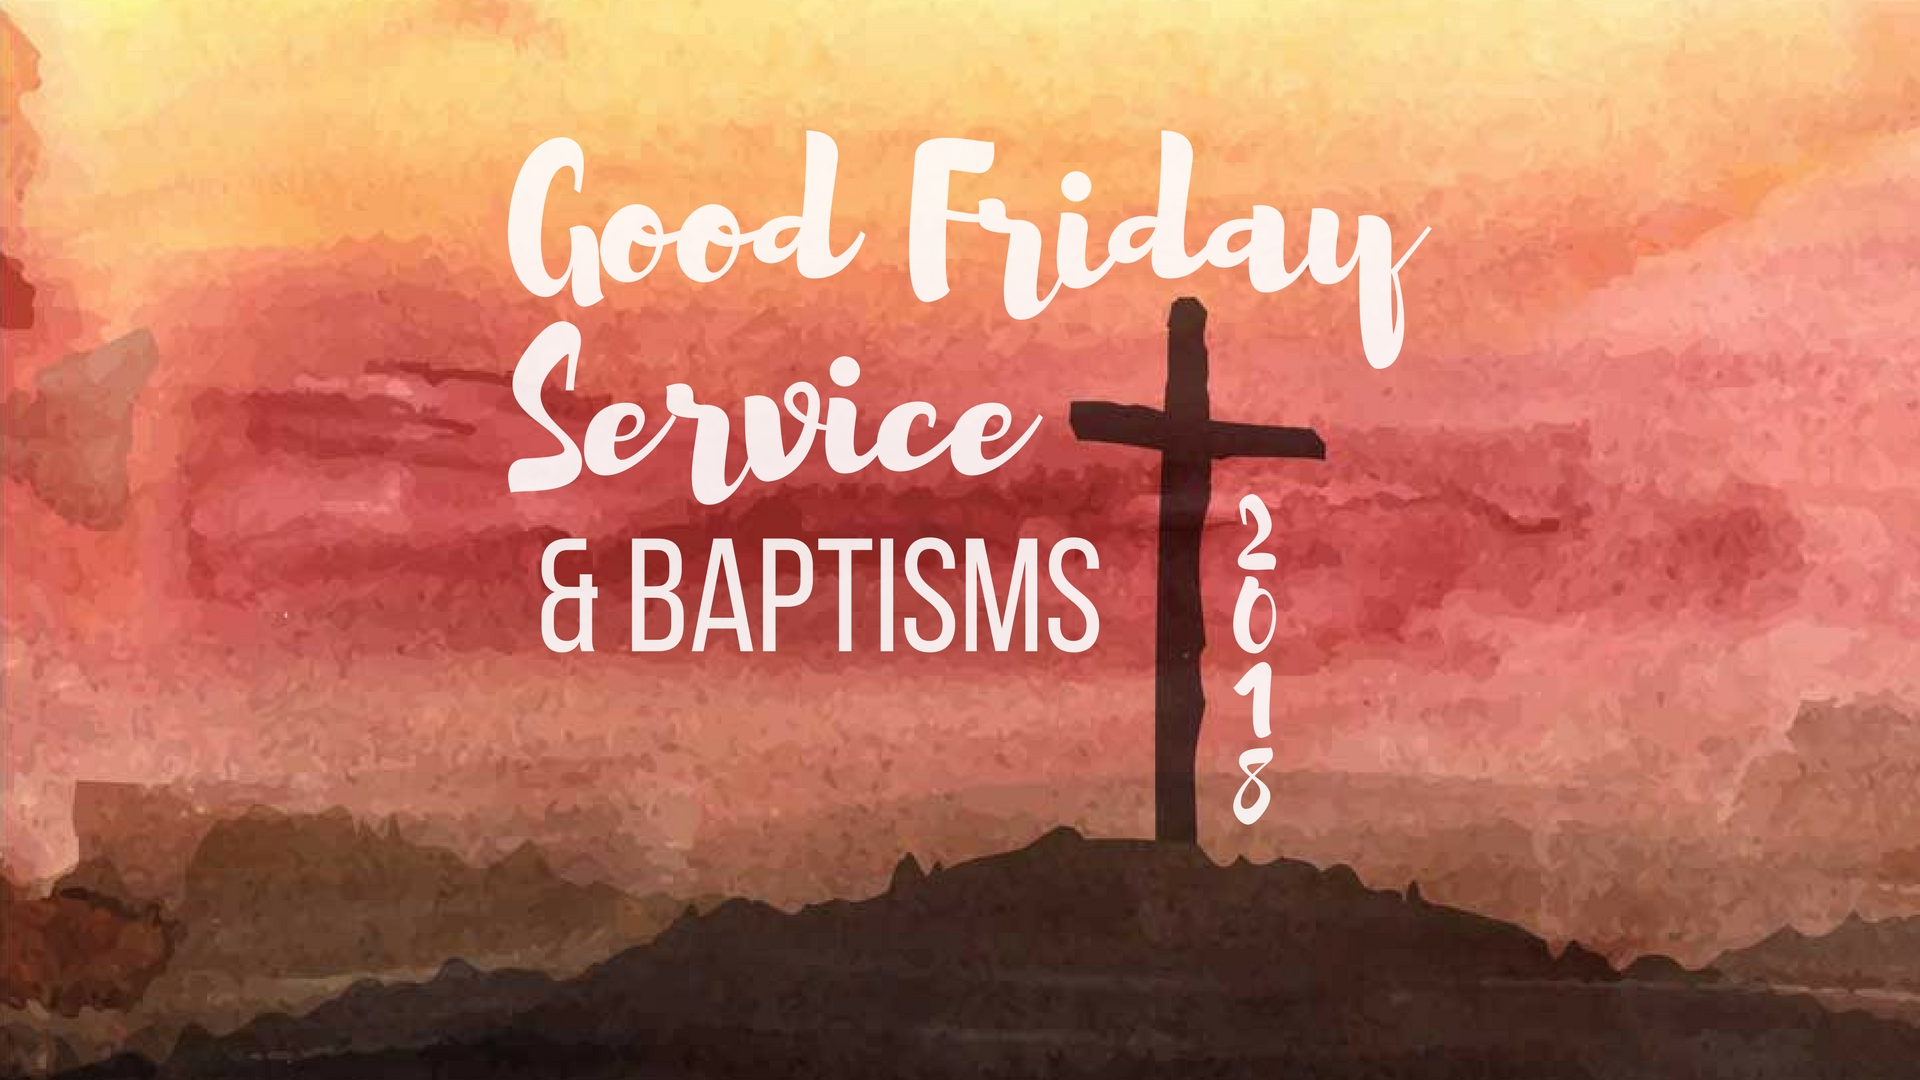 Good Friday Service - March 2018